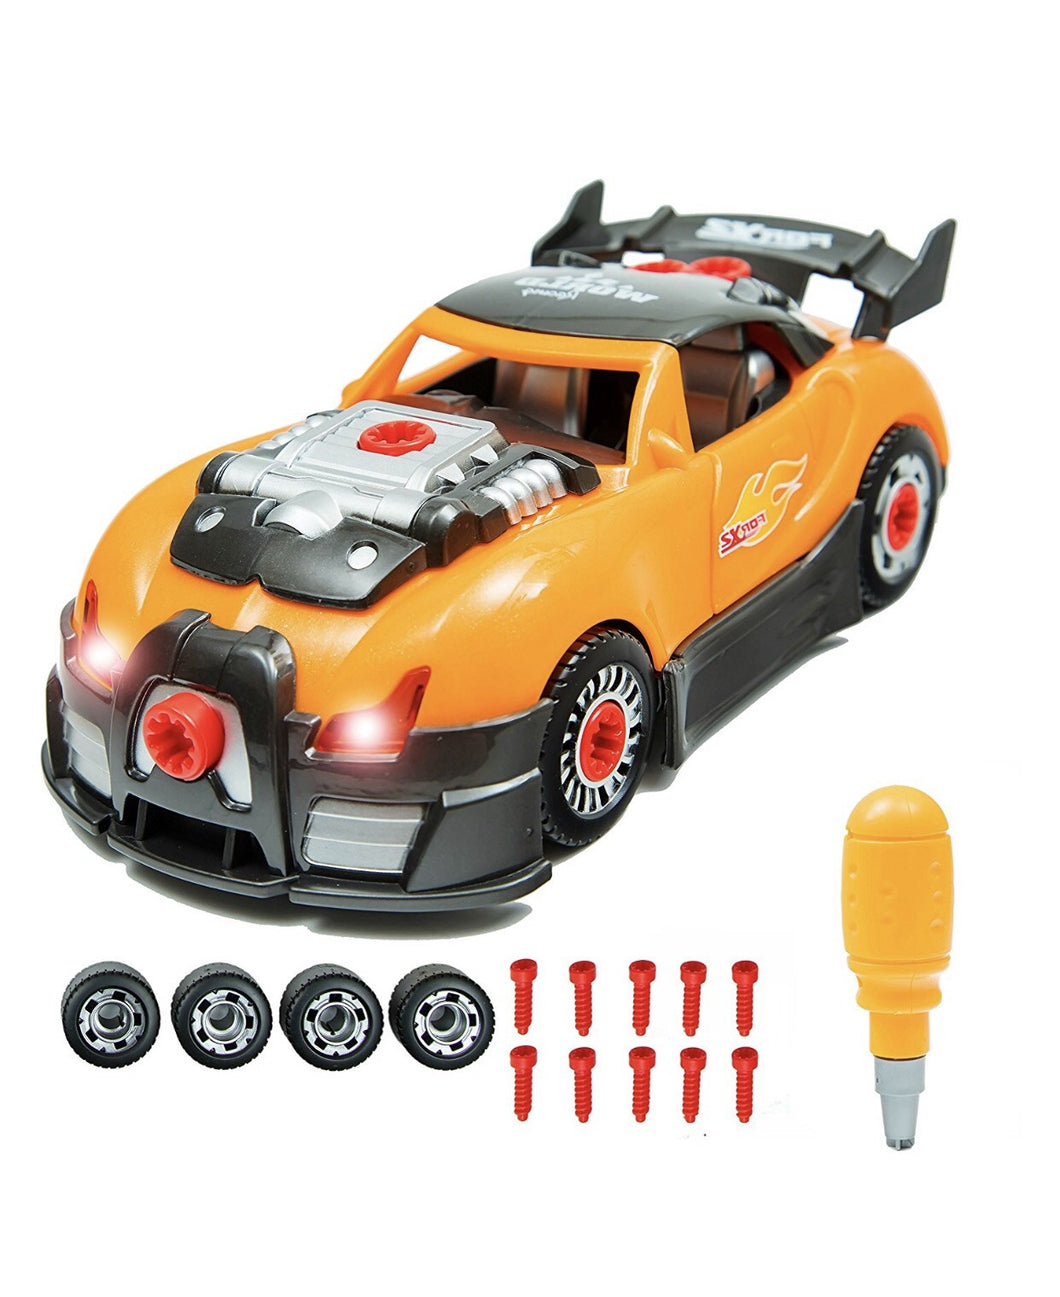 Brainnovative Toys Take Apart Toys Racing Car Kit Set